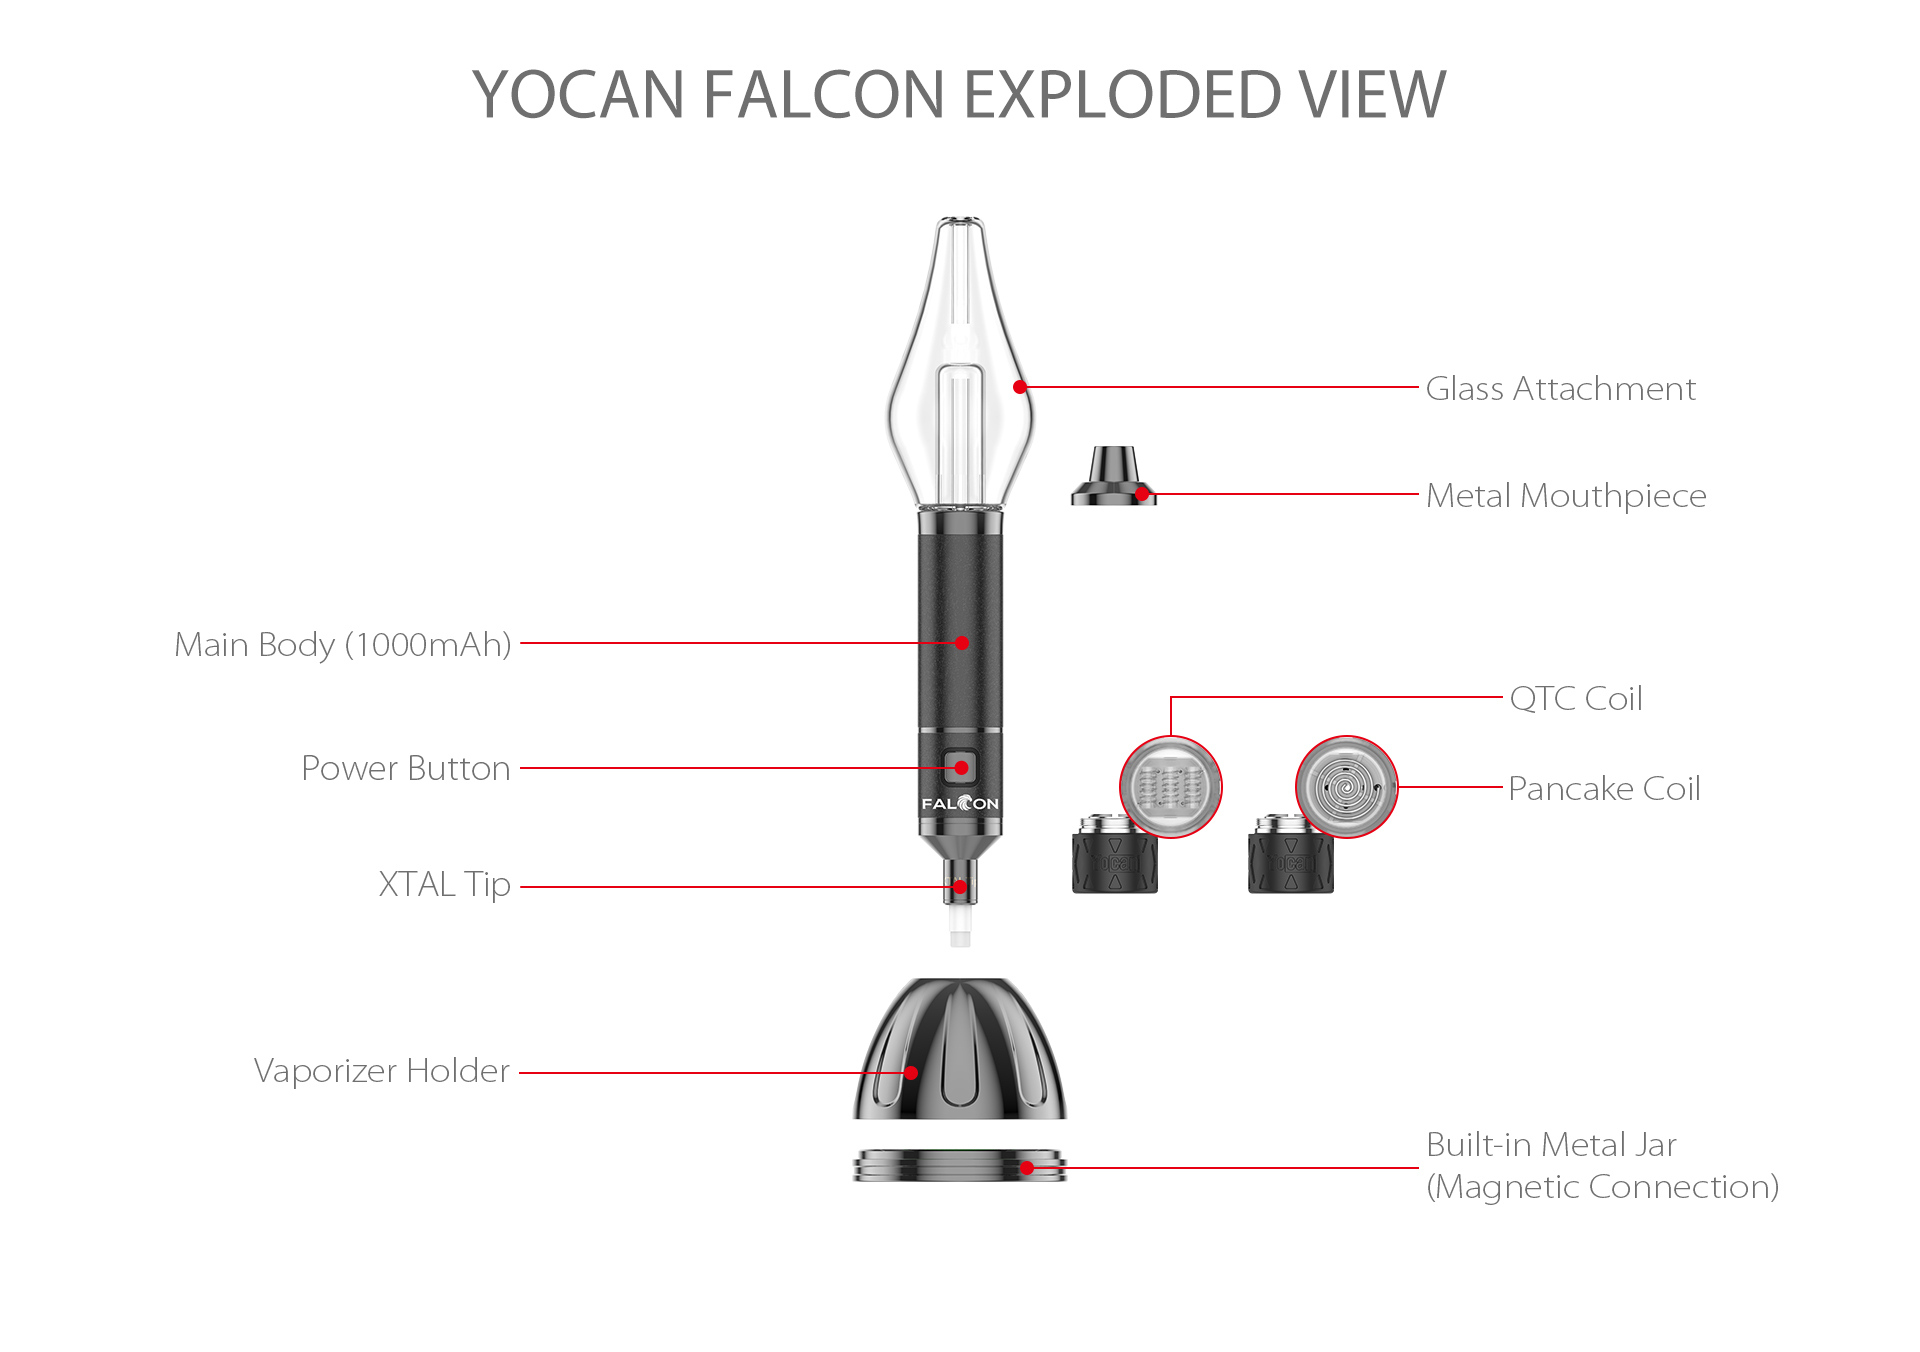 Yocan Falcon Vaporizer exploded view.